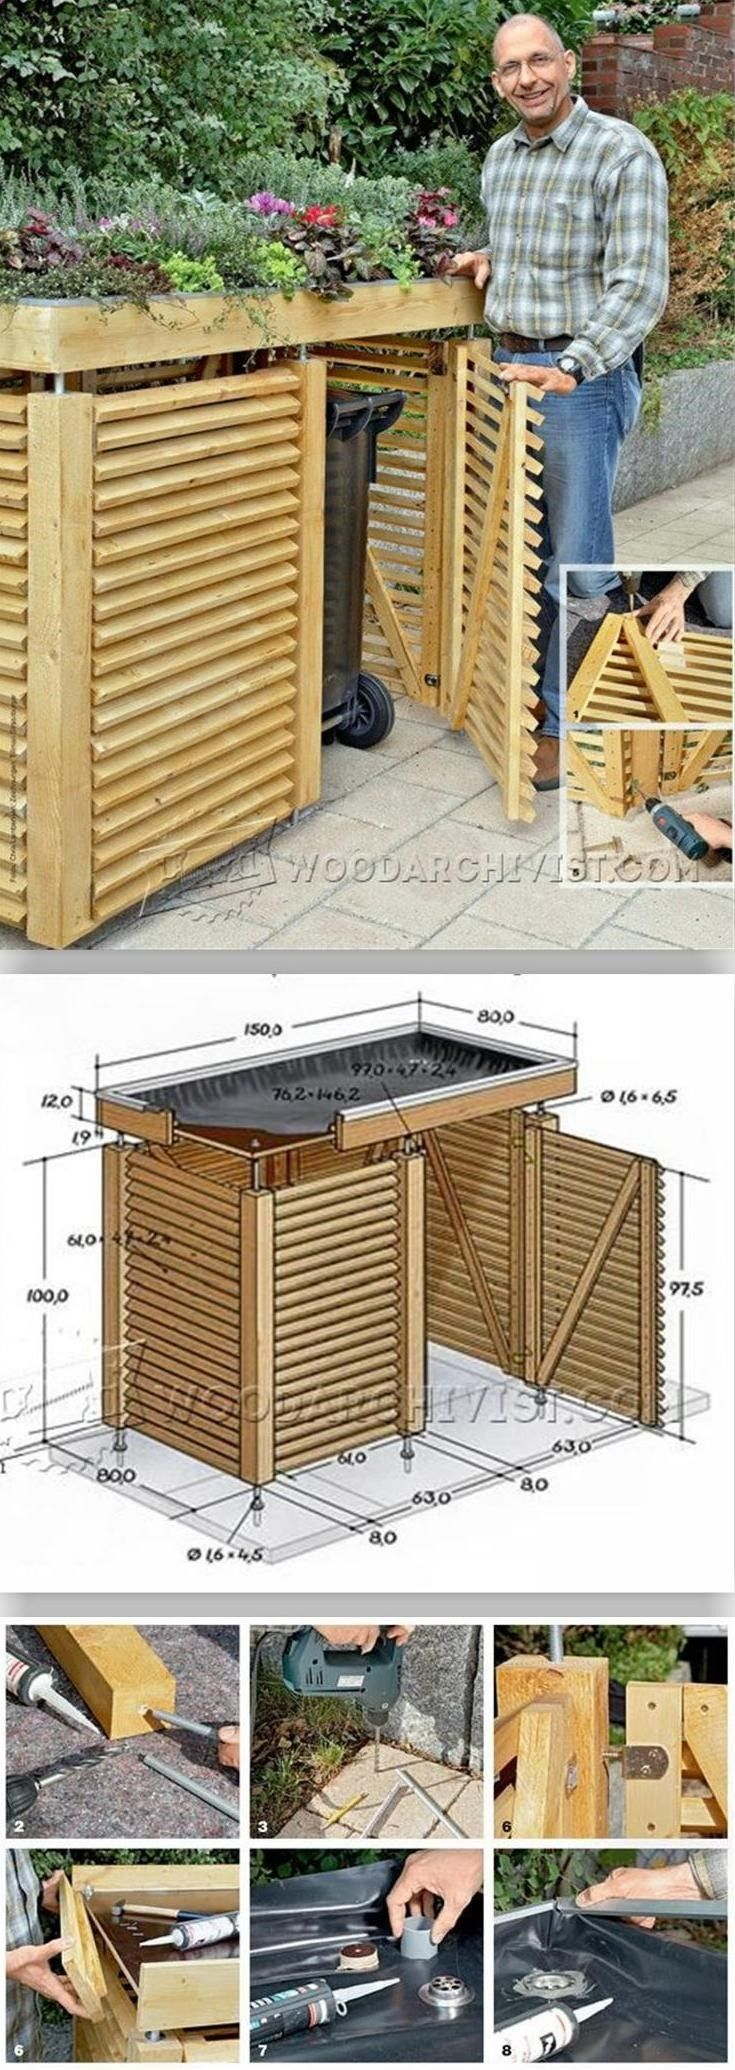 Photo of Nice idea in adding the planter on top #Woodworking